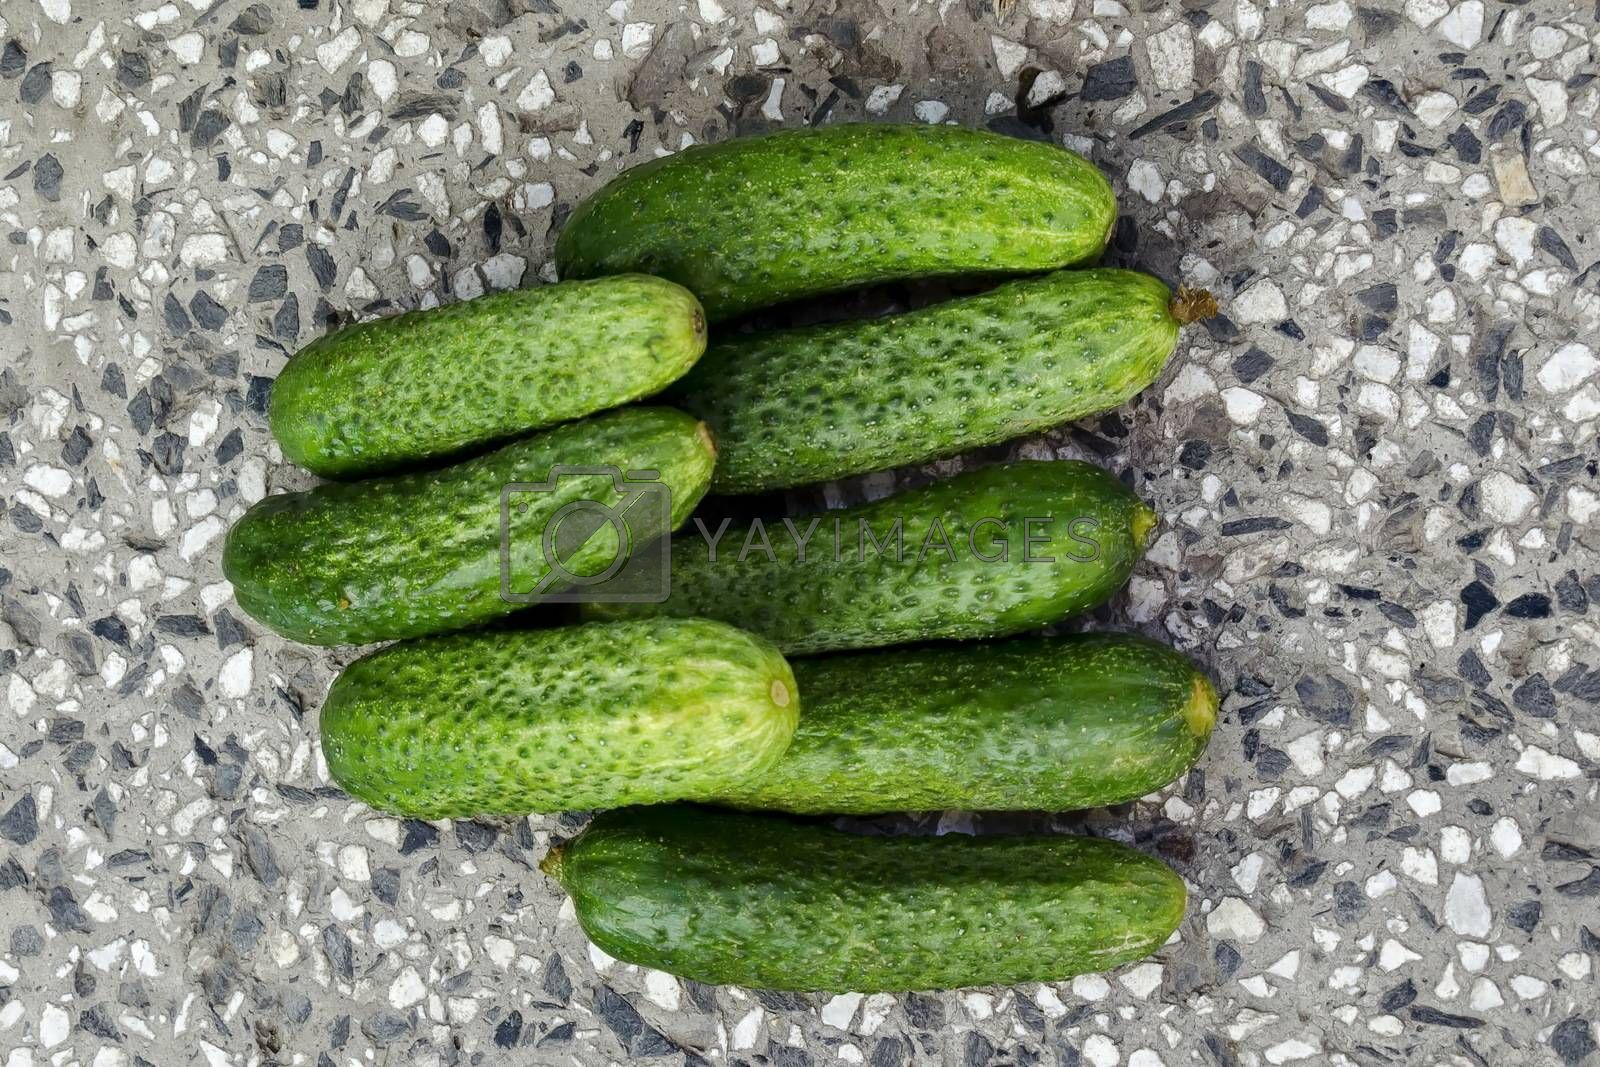 A stack of several fresh green cucumber gherkins on the mosaic, Sofia, Bulgaria